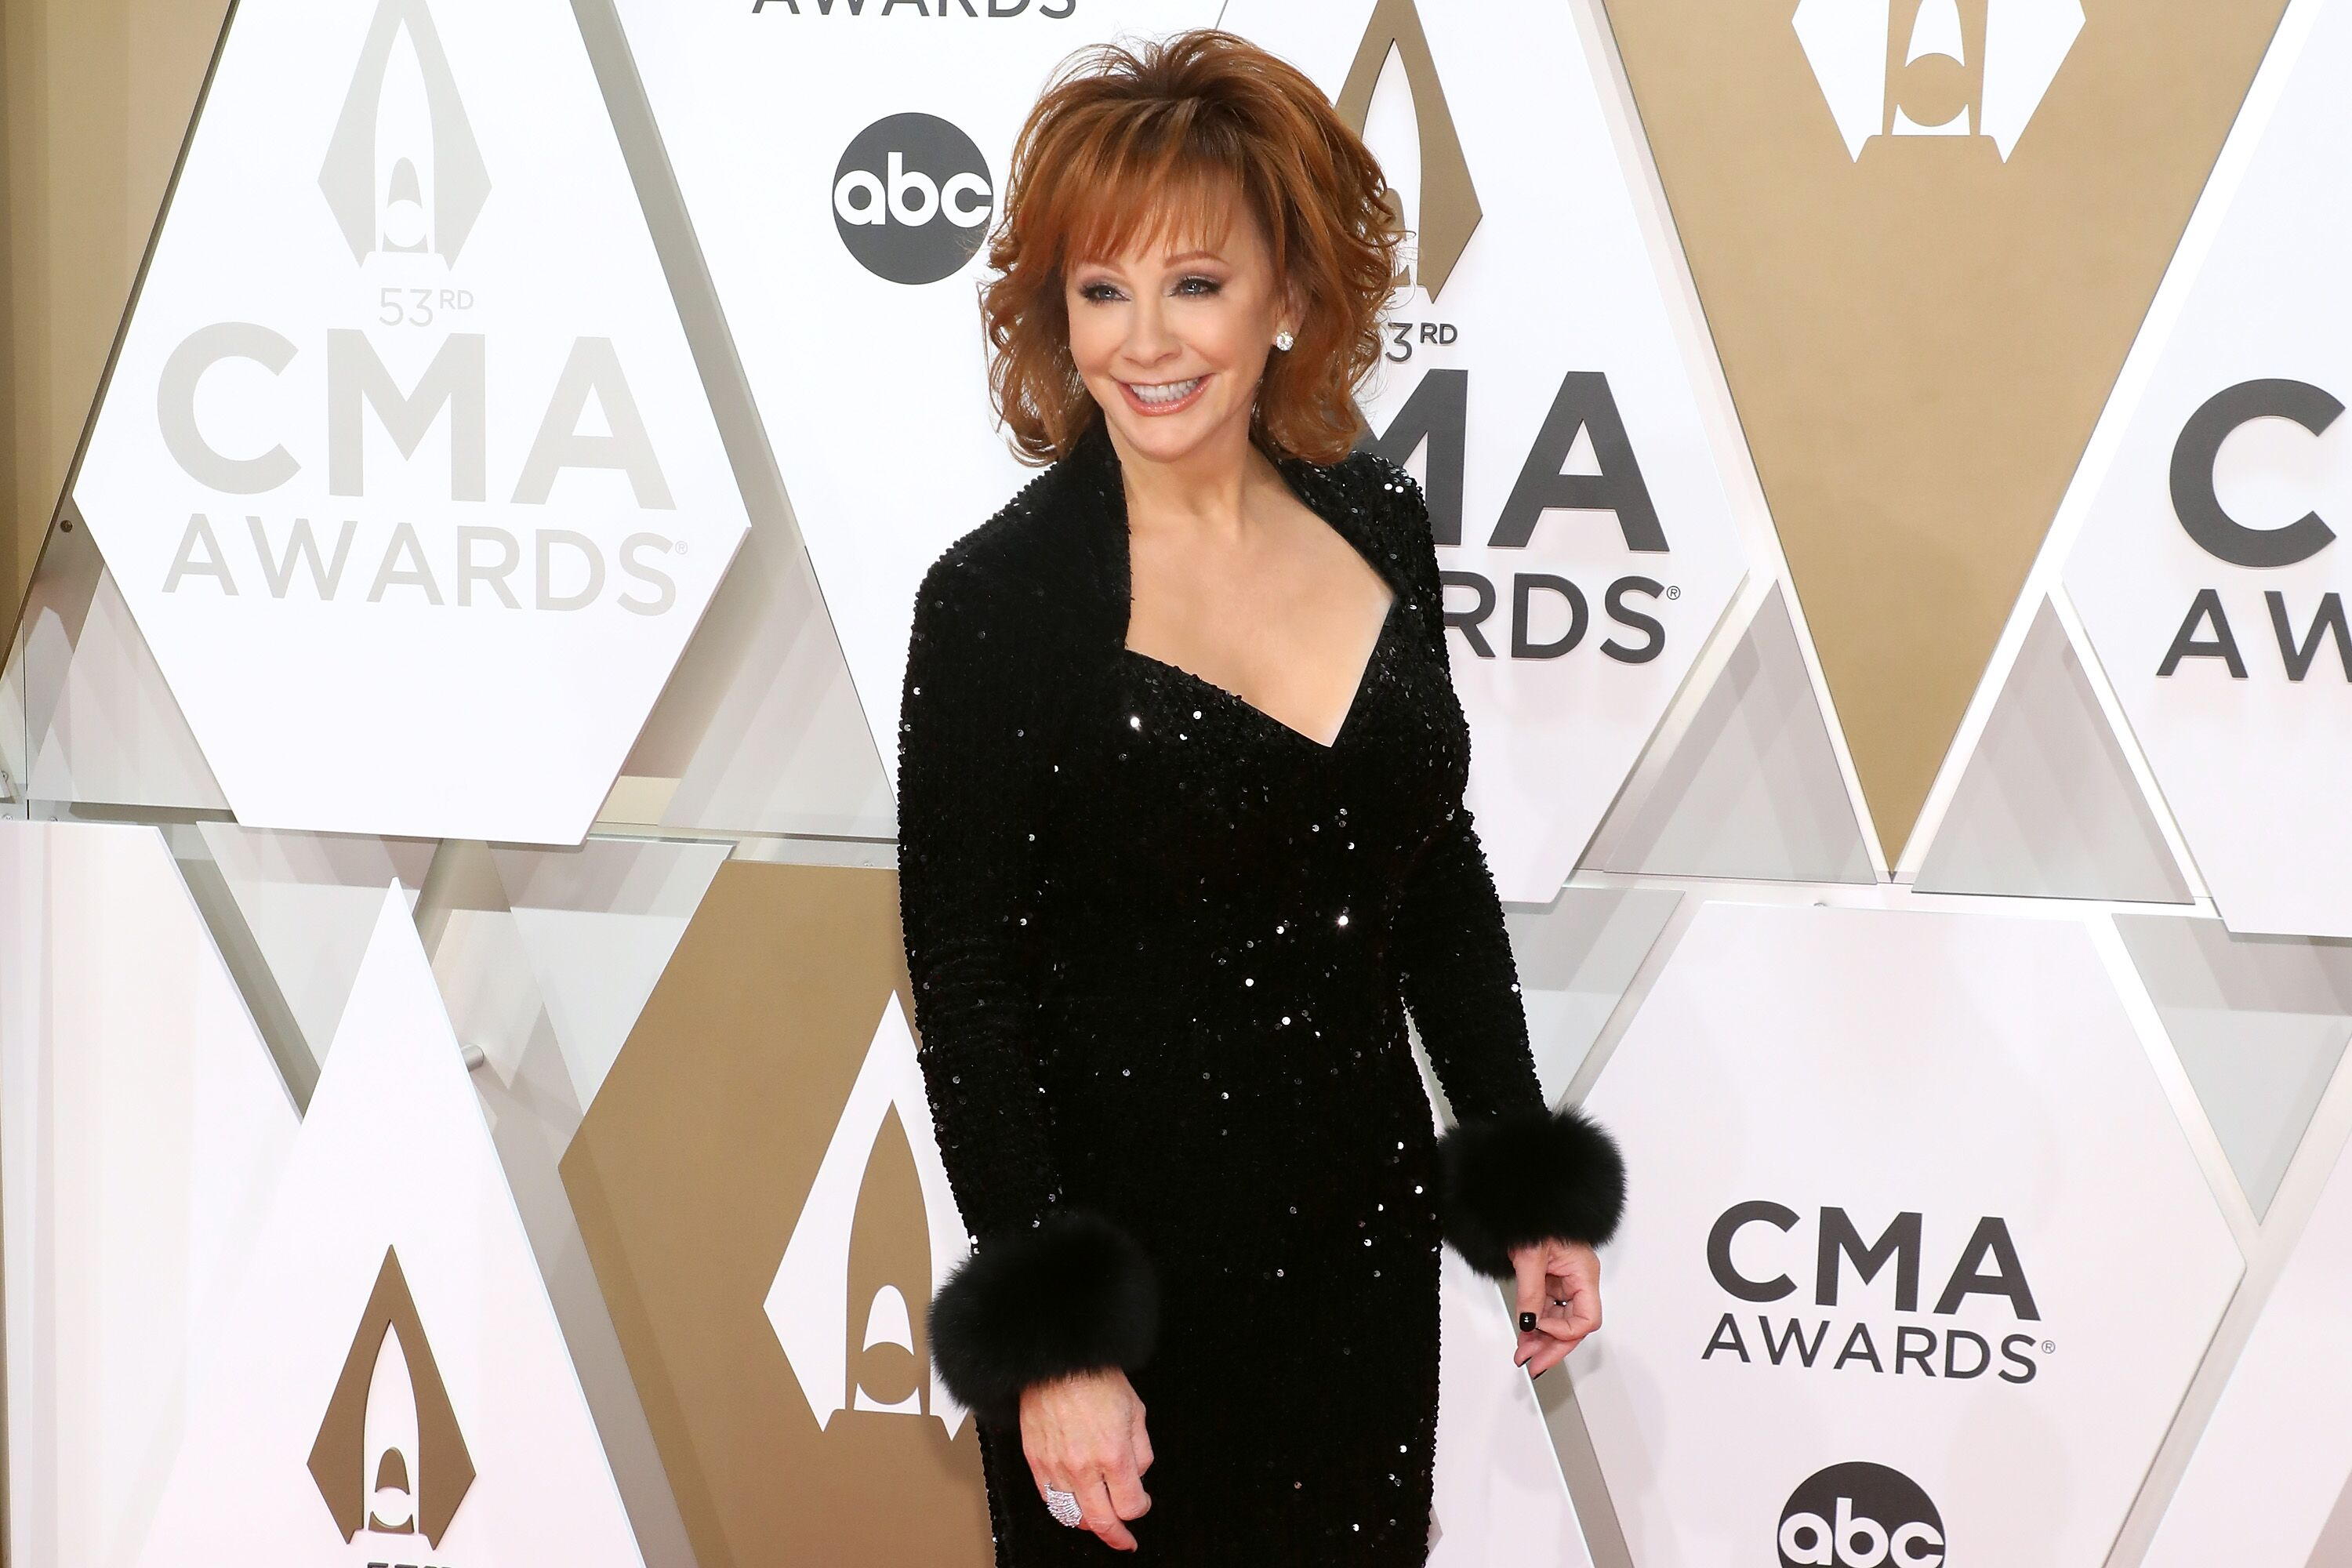 Reba McEntire at the 53rd annual CMA Awards. | Source: Getty Images